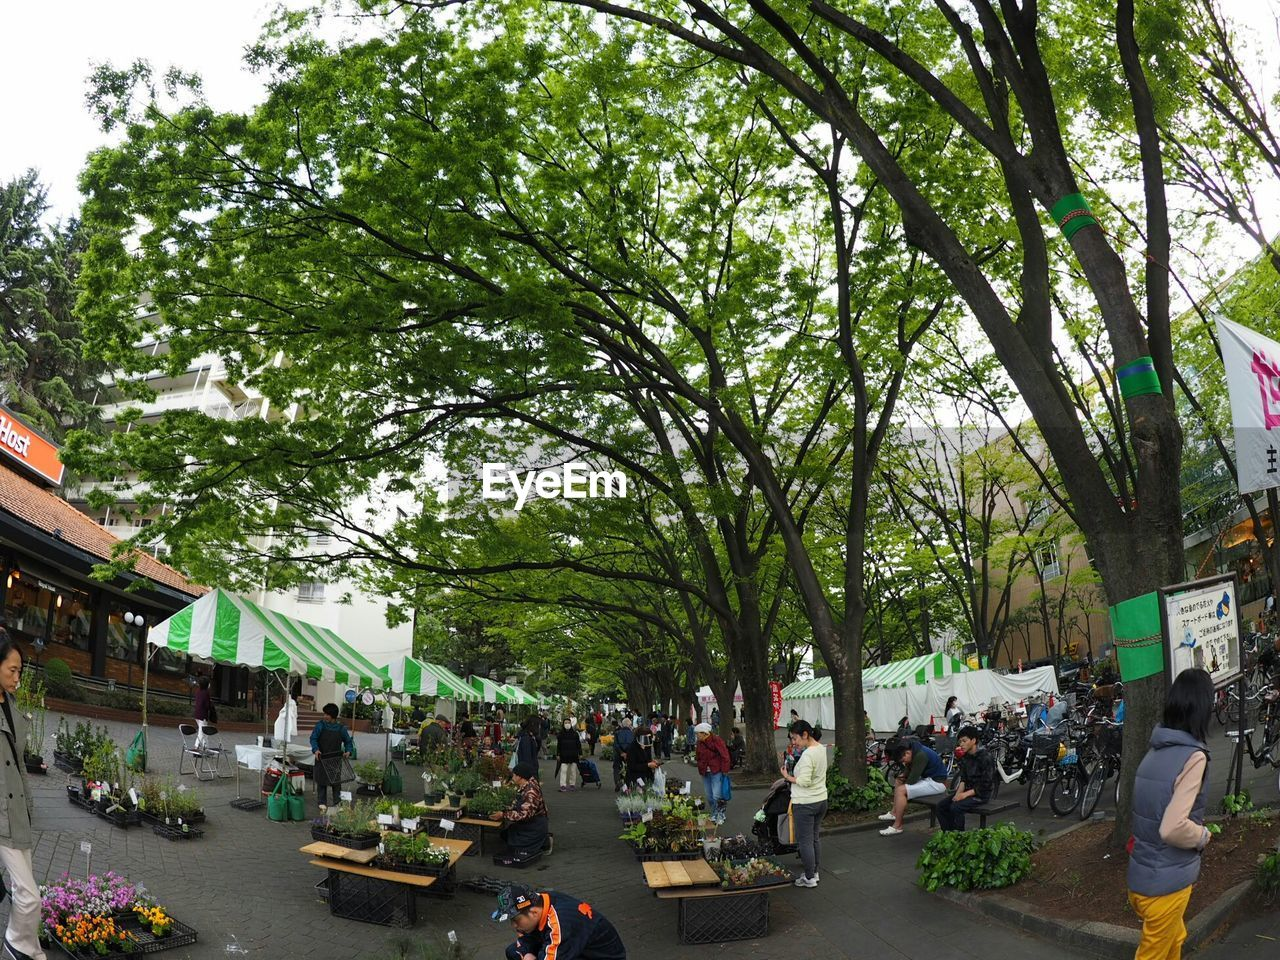 tree, plant, group of people, crowd, architecture, city, building exterior, nature, large group of people, built structure, real people, street, men, leisure activity, day, transportation, women, building, market, outdoors